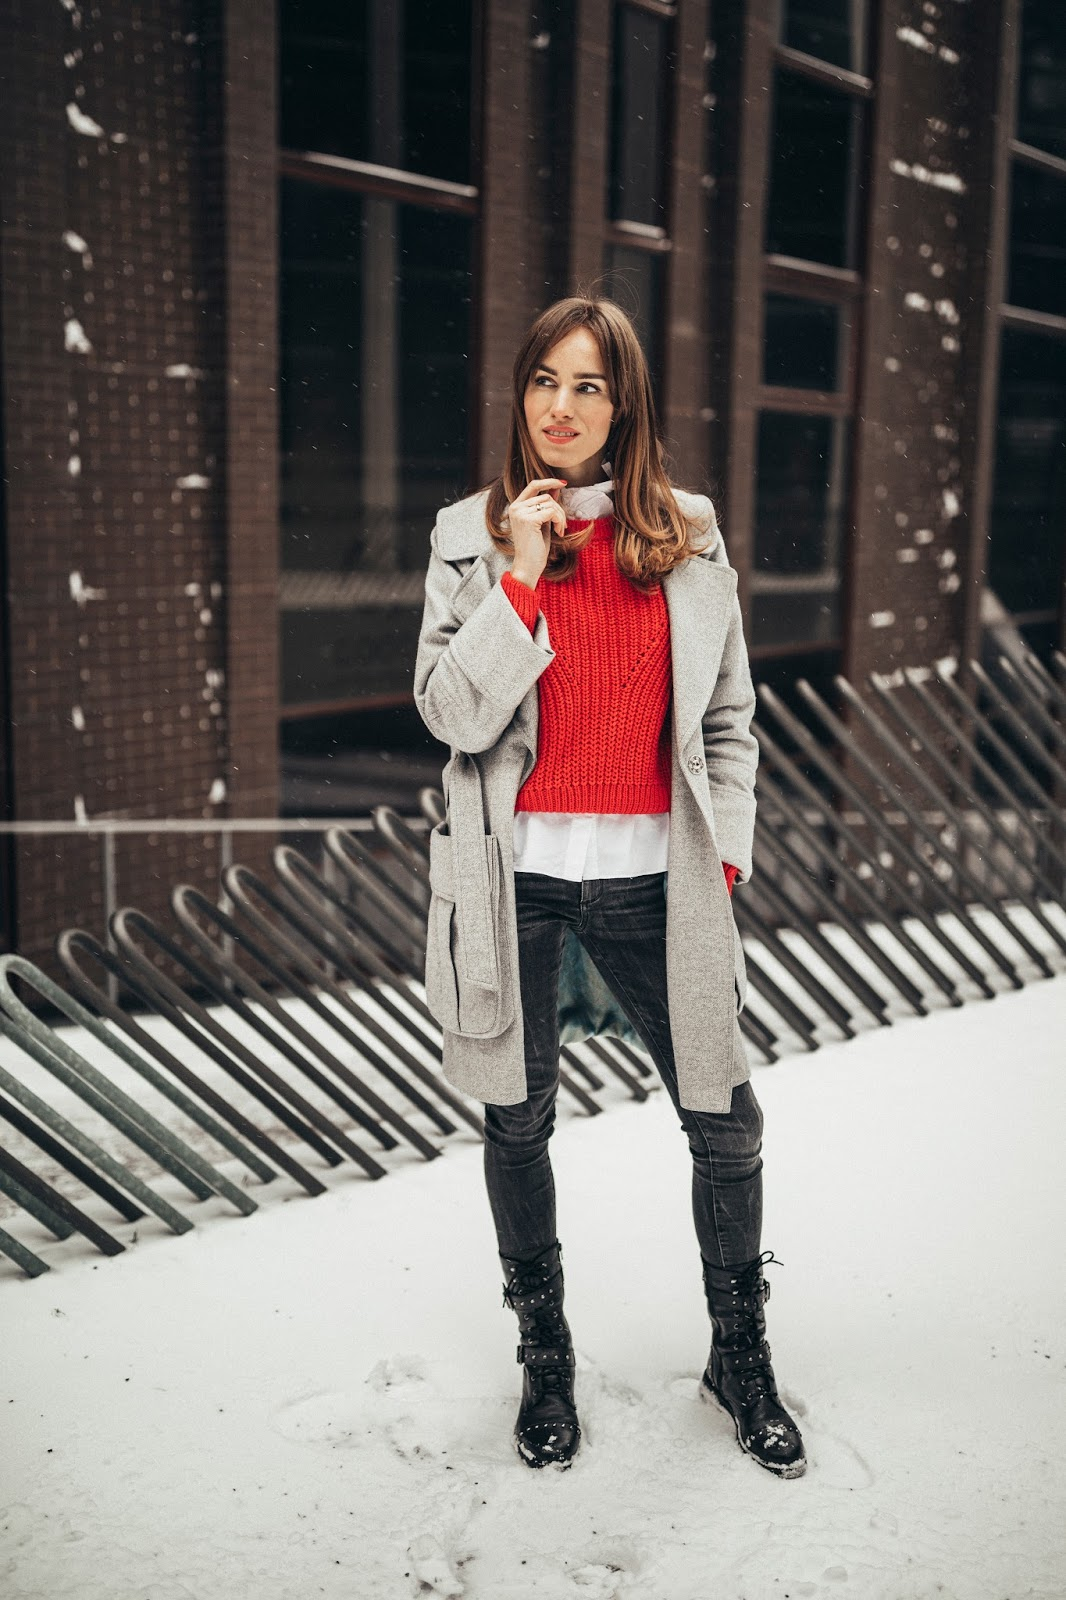 grey coat combat boots red jumper outfit winter